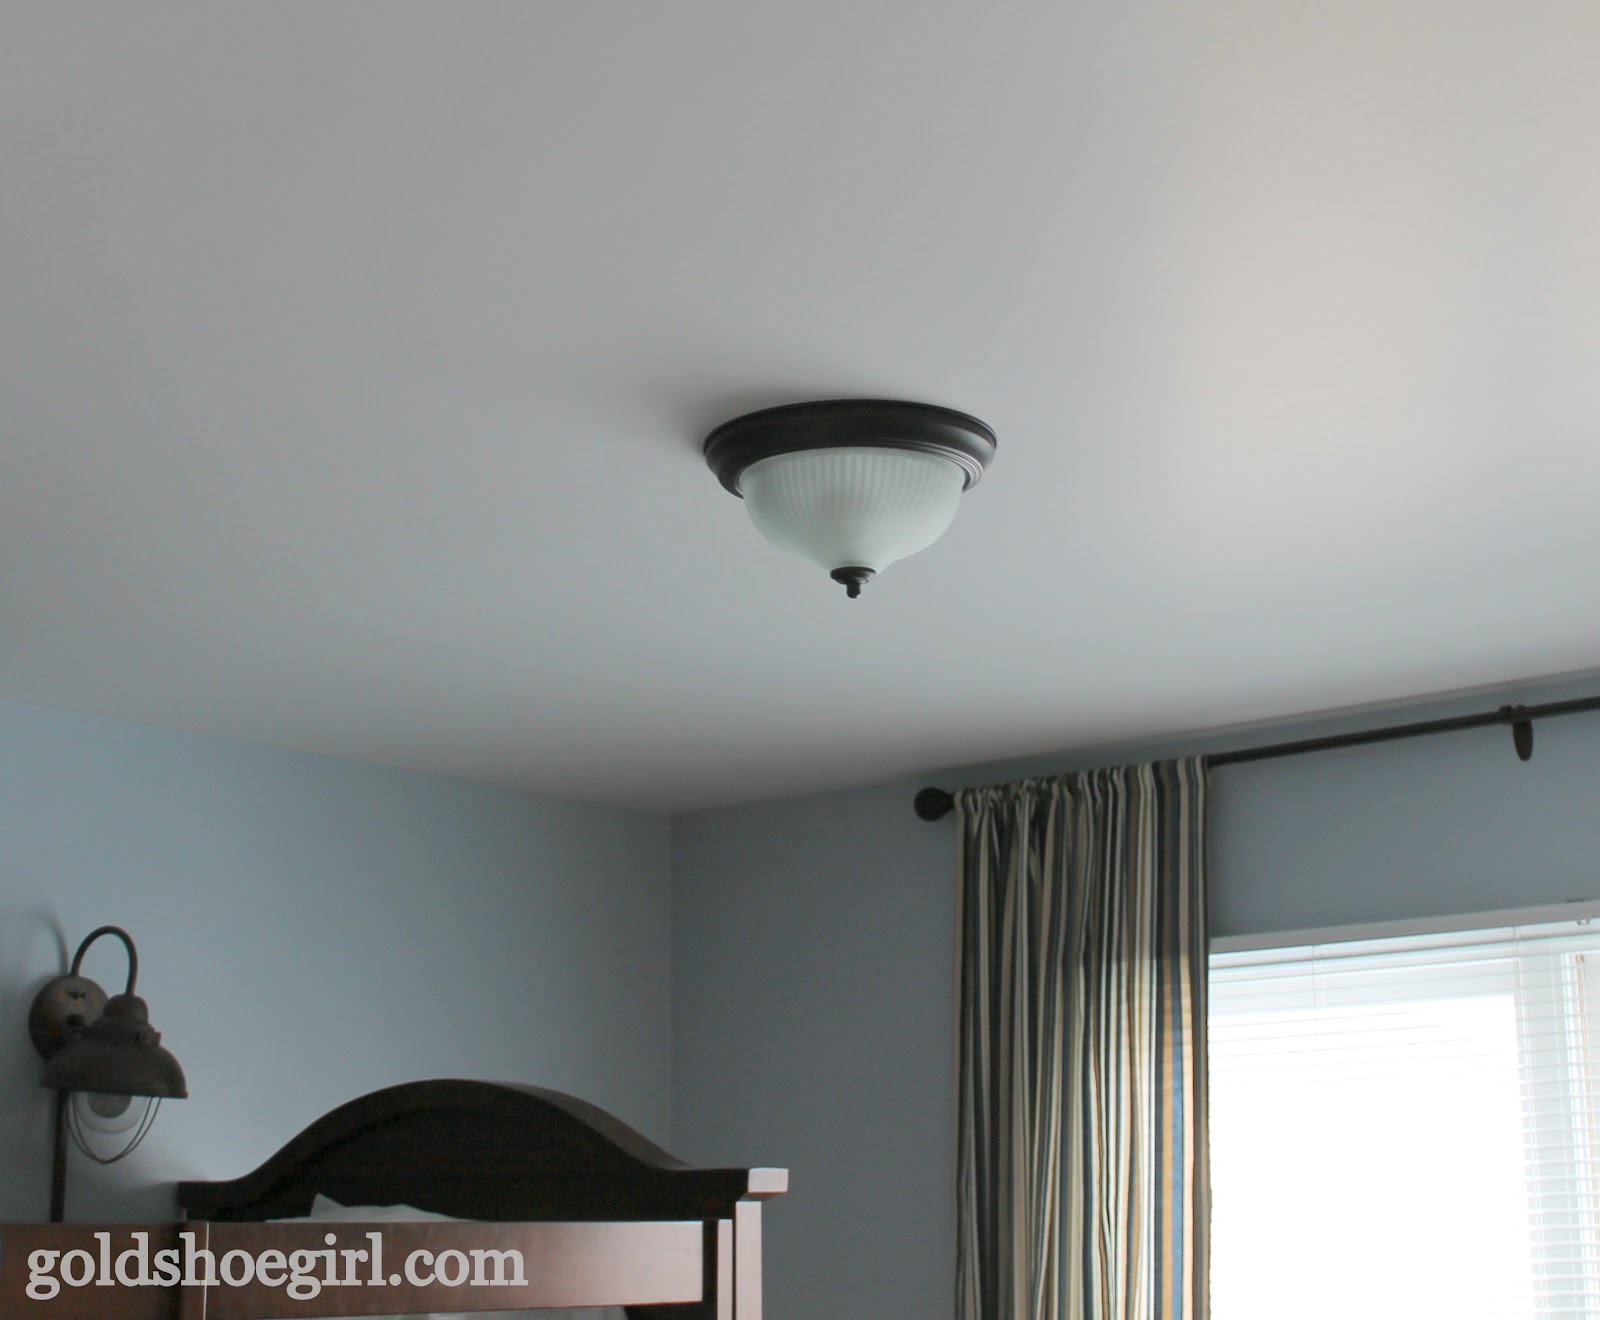 Ceiling Light For Baby Boy Room Gold Shoe Girl Boy 39s Bedroom Before And After